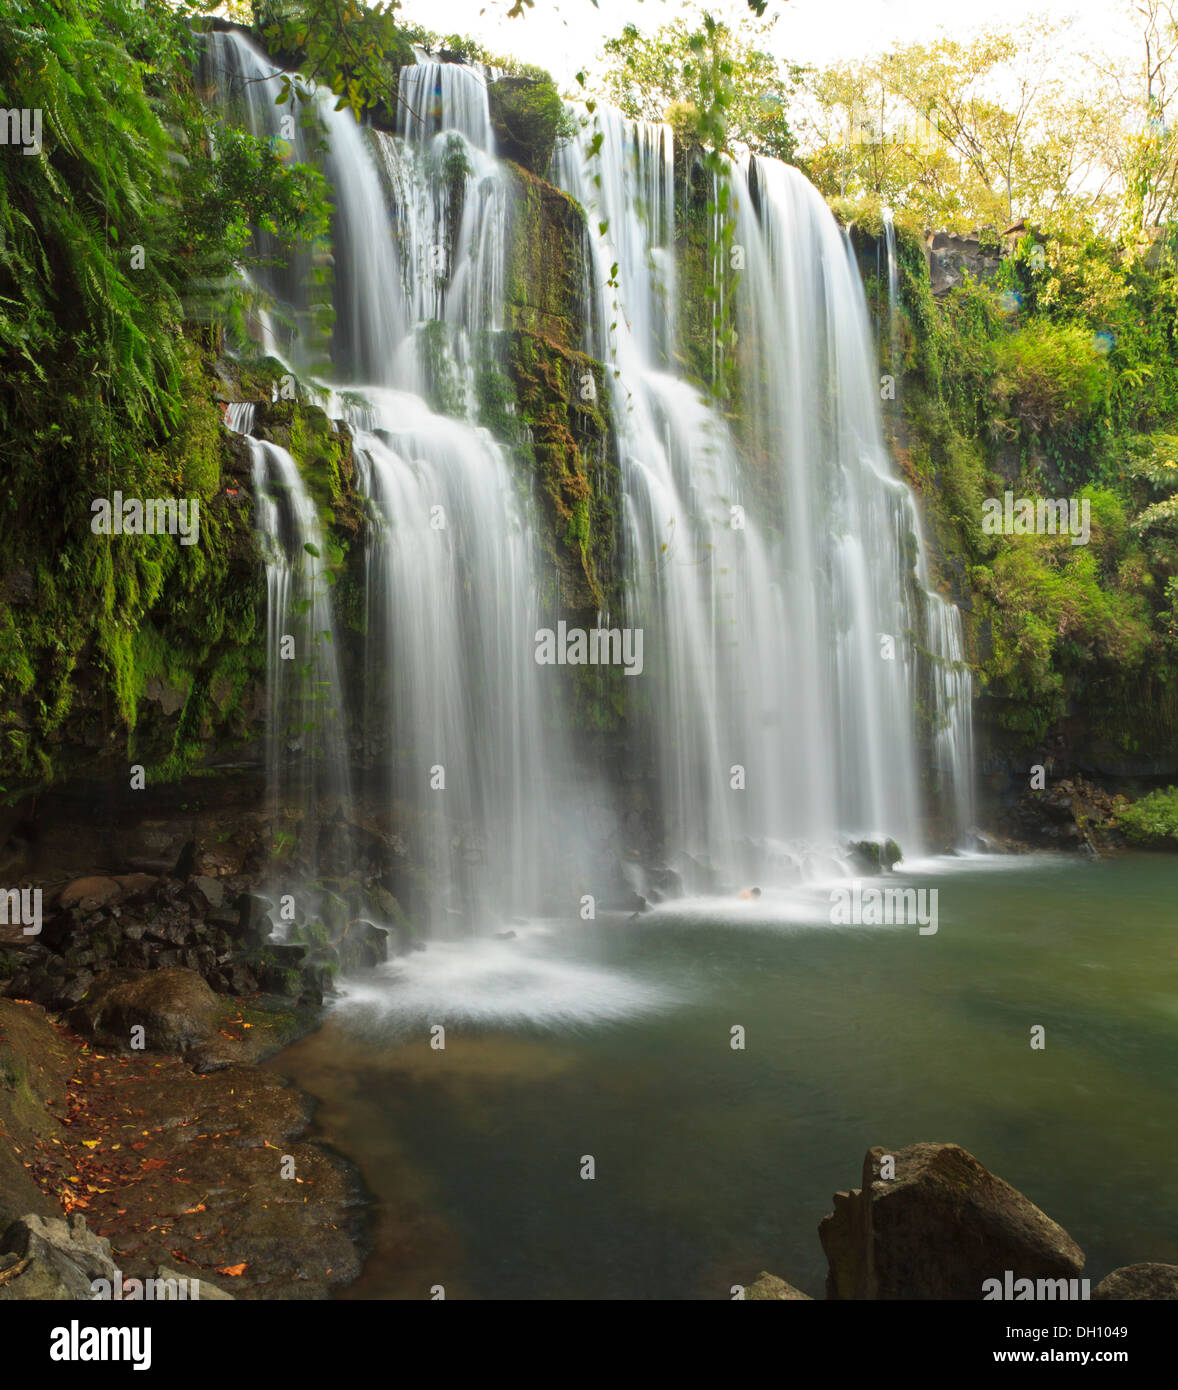 Side view of the idyllic and silky Llano de Cortes waterfall near Bagaces, Costa Rica - Stock Image